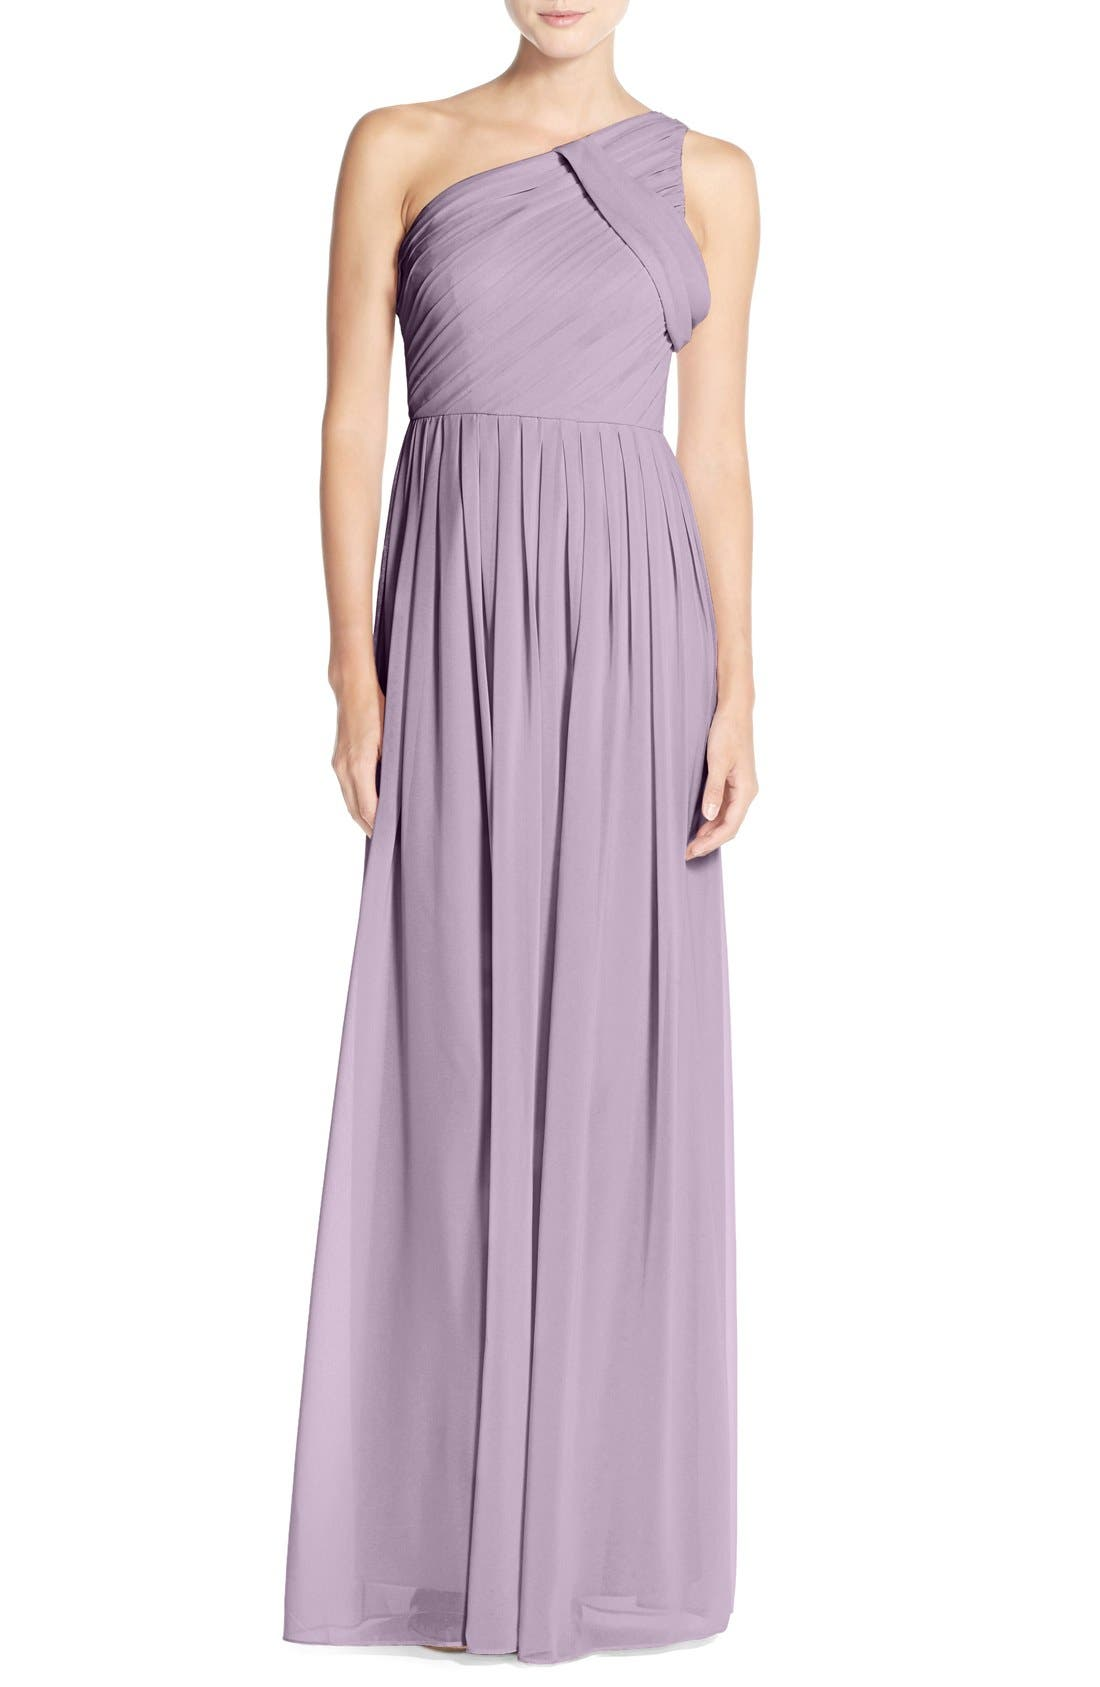 'Chloe' One-Shoulder Pleat Chiffon Gown,                             Main thumbnail 1, color,